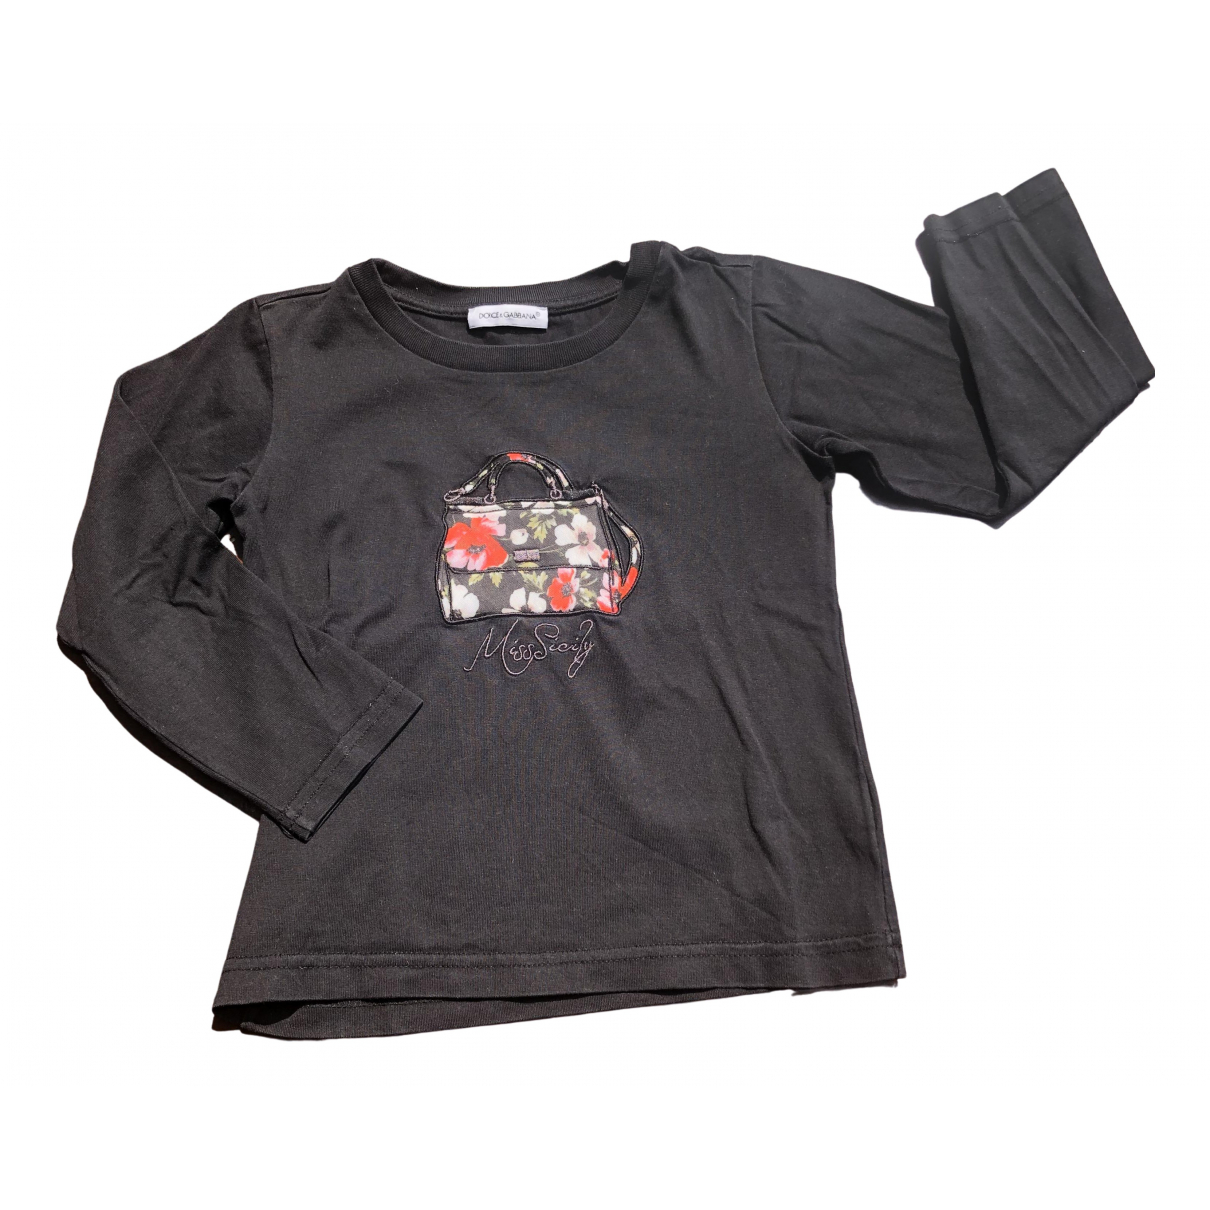 Dolce & Gabbana \N Black Cotton  top for Kids 2 years - up to 86cm FR